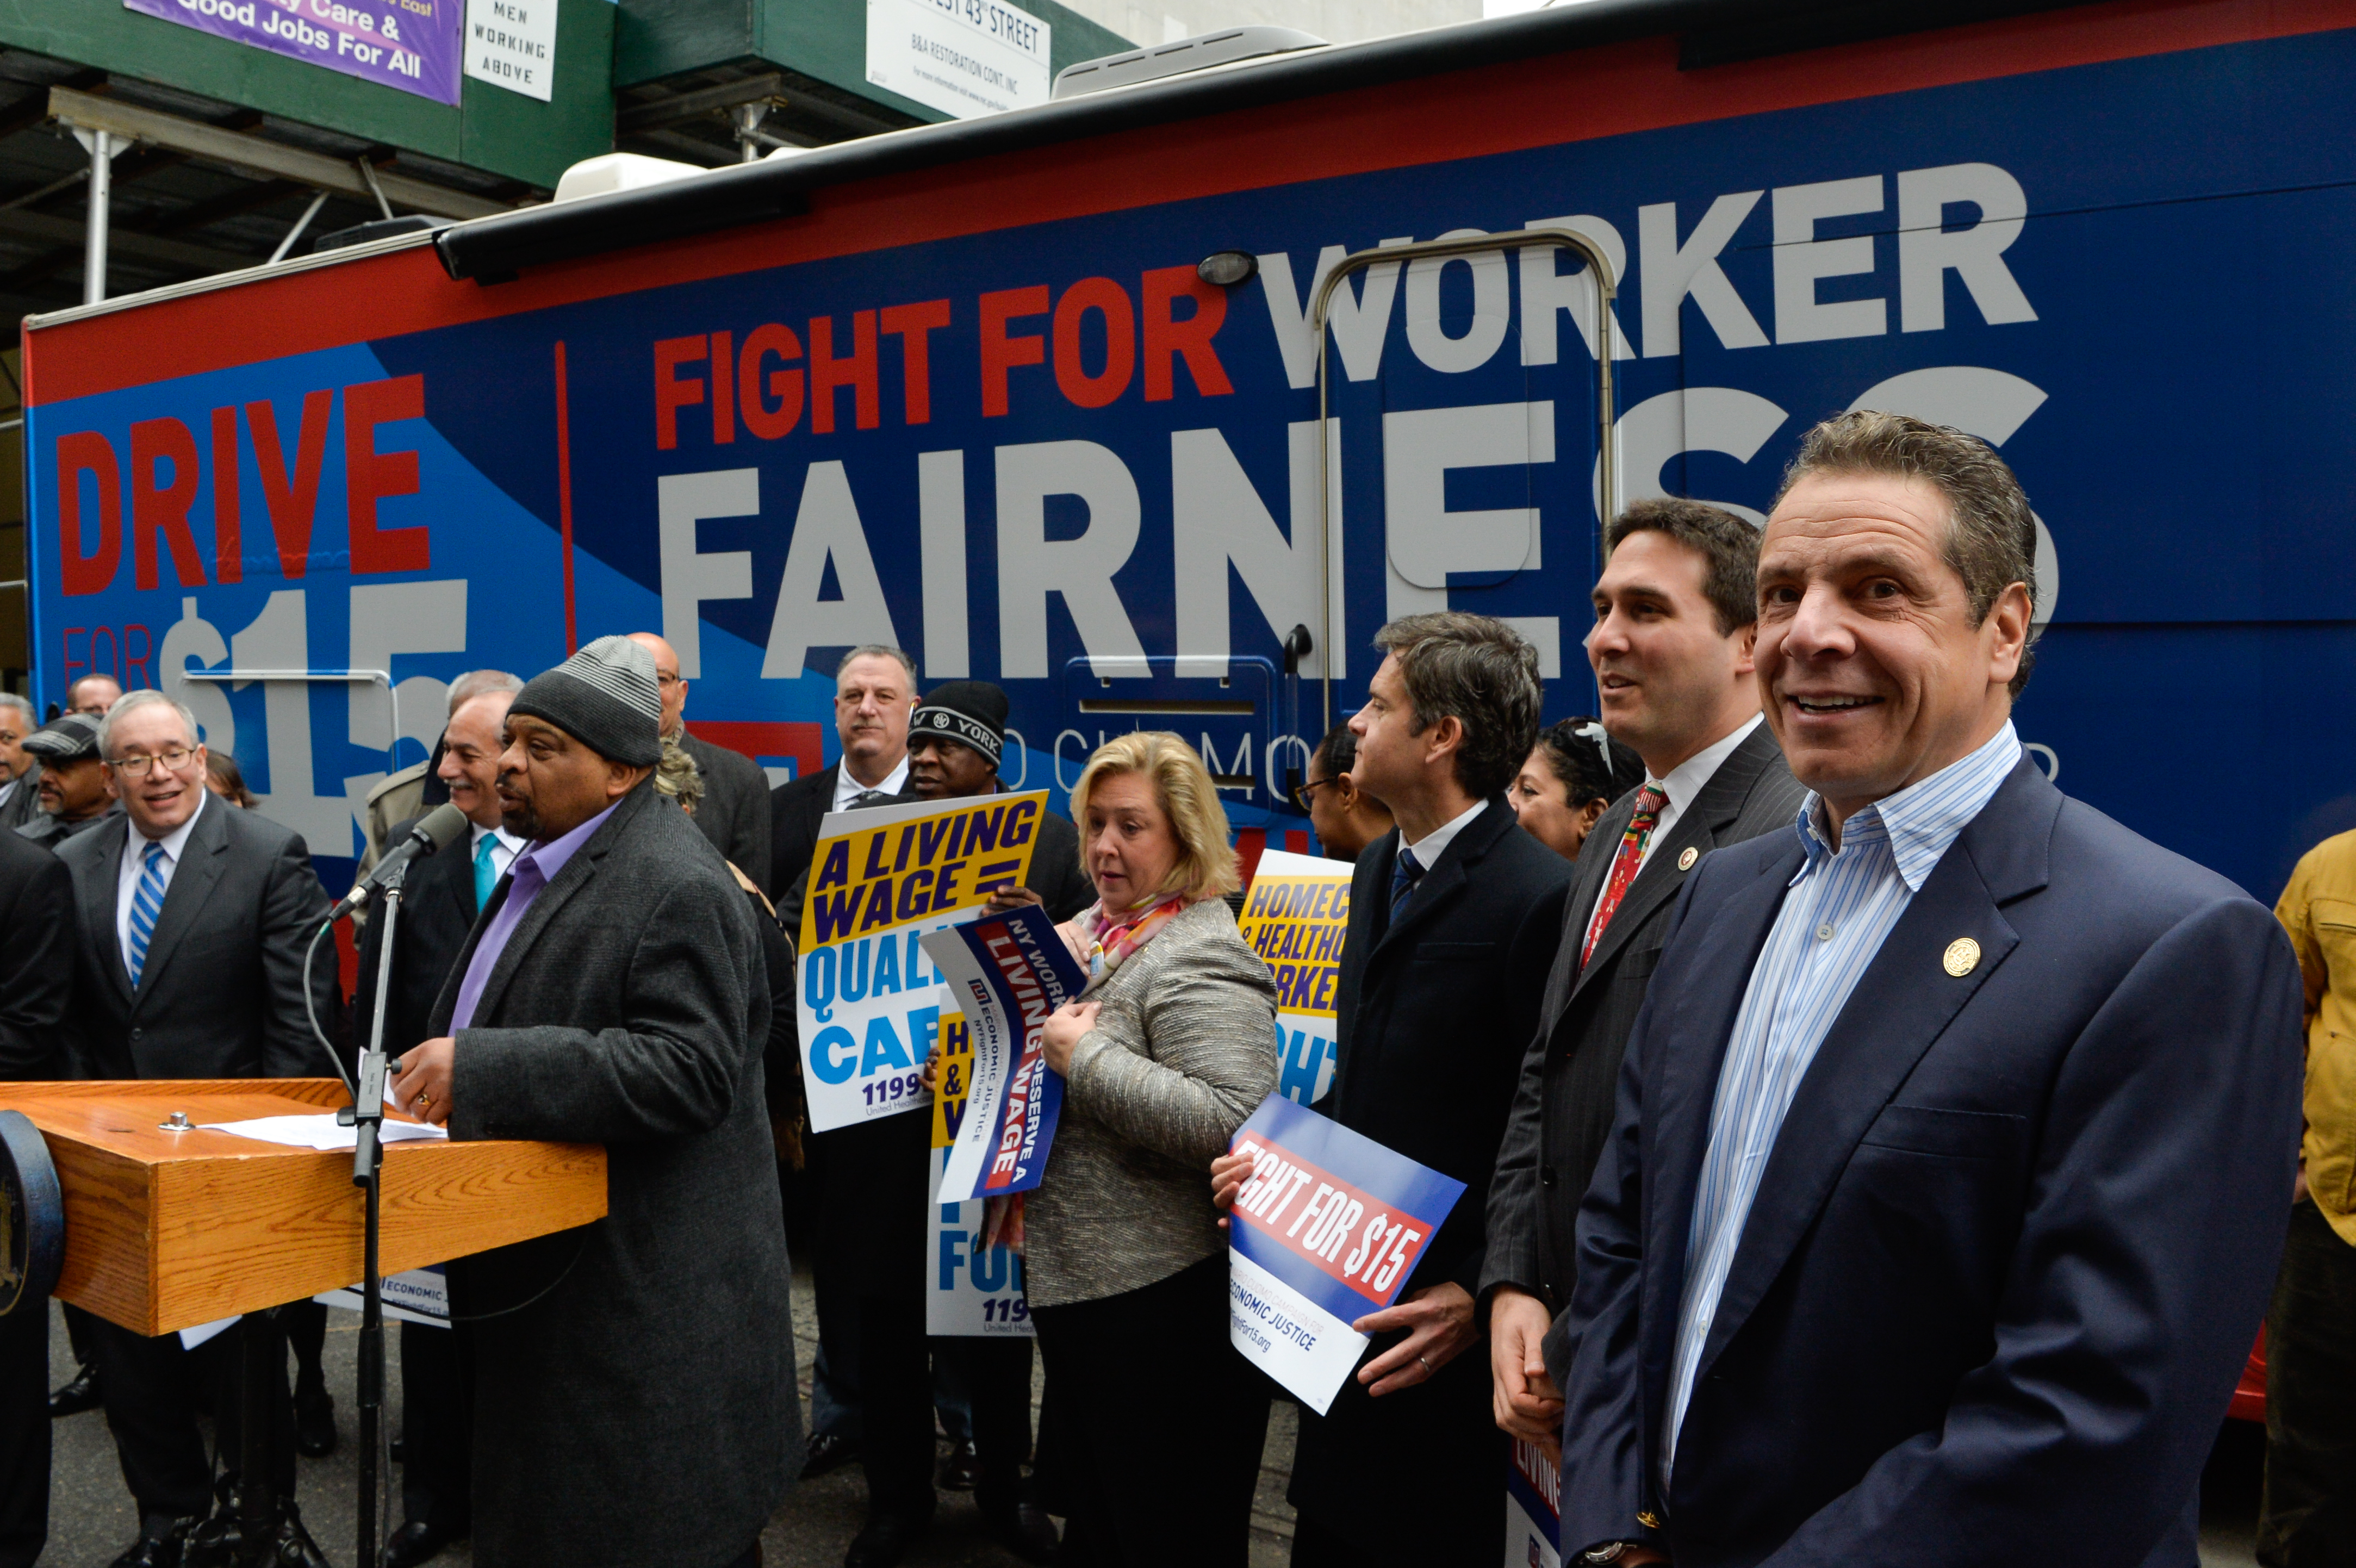 """In 2016, Gov. Andrew Cuomo helped the """"Drive for $15"""" campaign to raise the minimum wage, kick off a bus tour."""